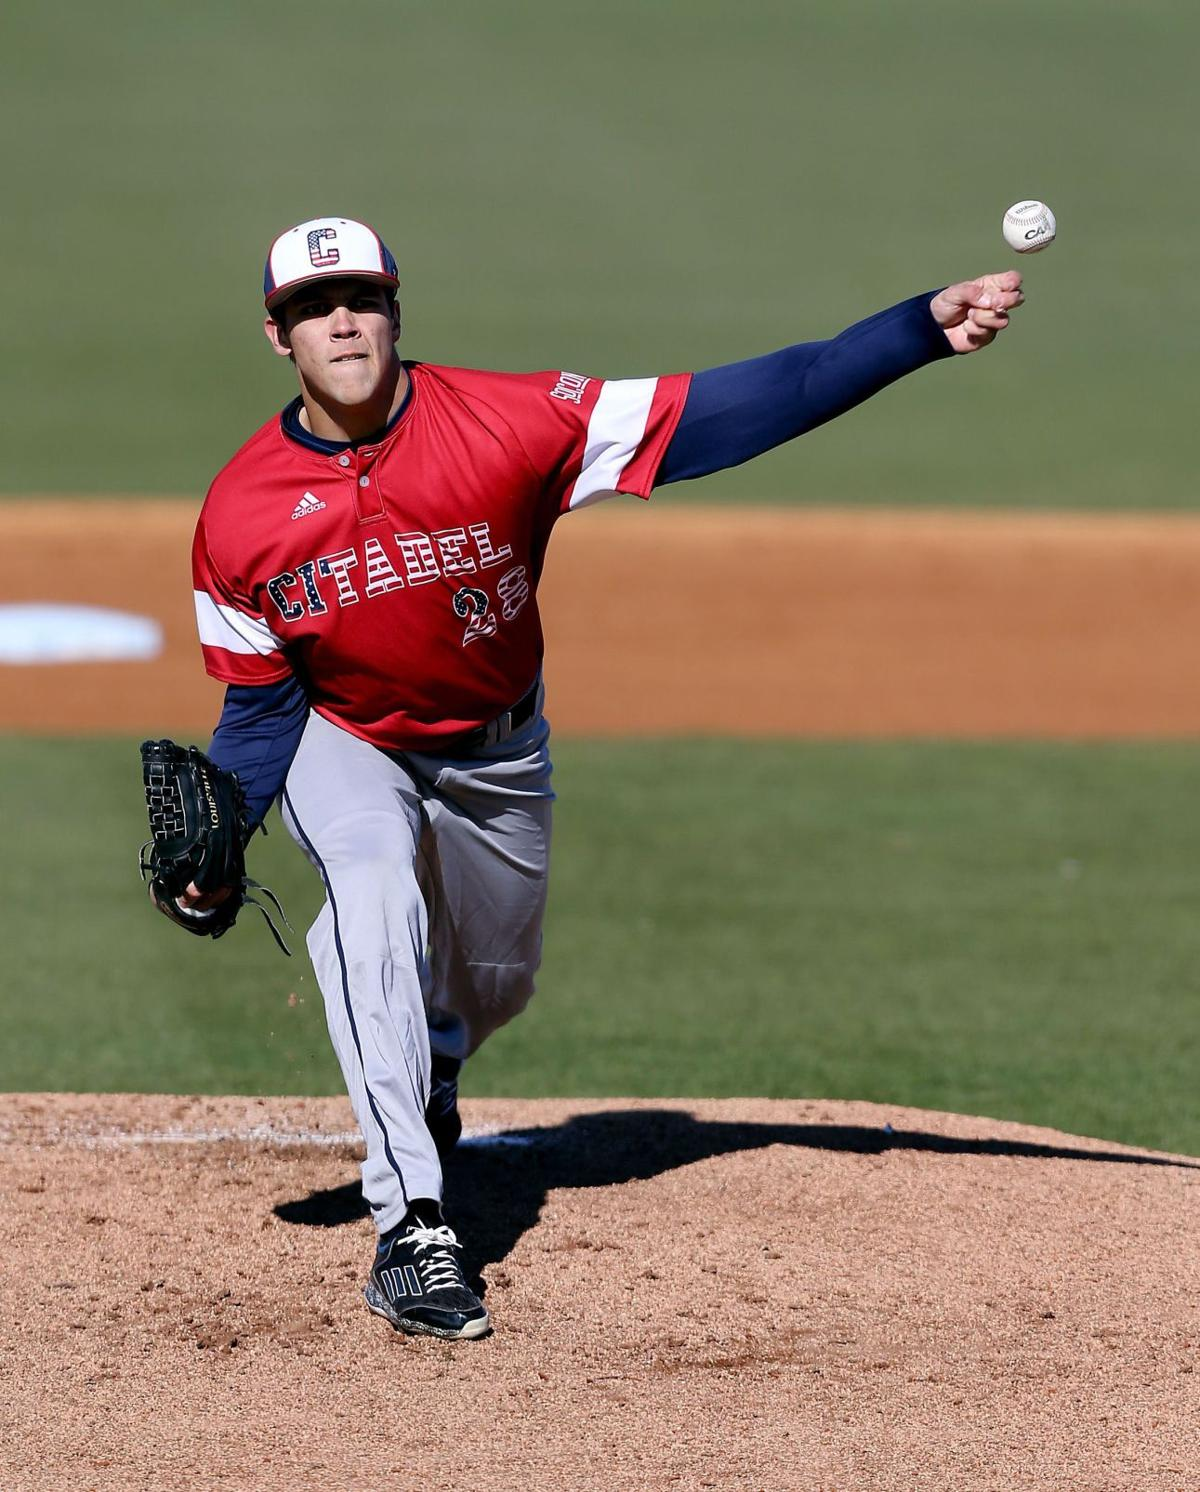 Citadel's Reeves tosses no-hitter